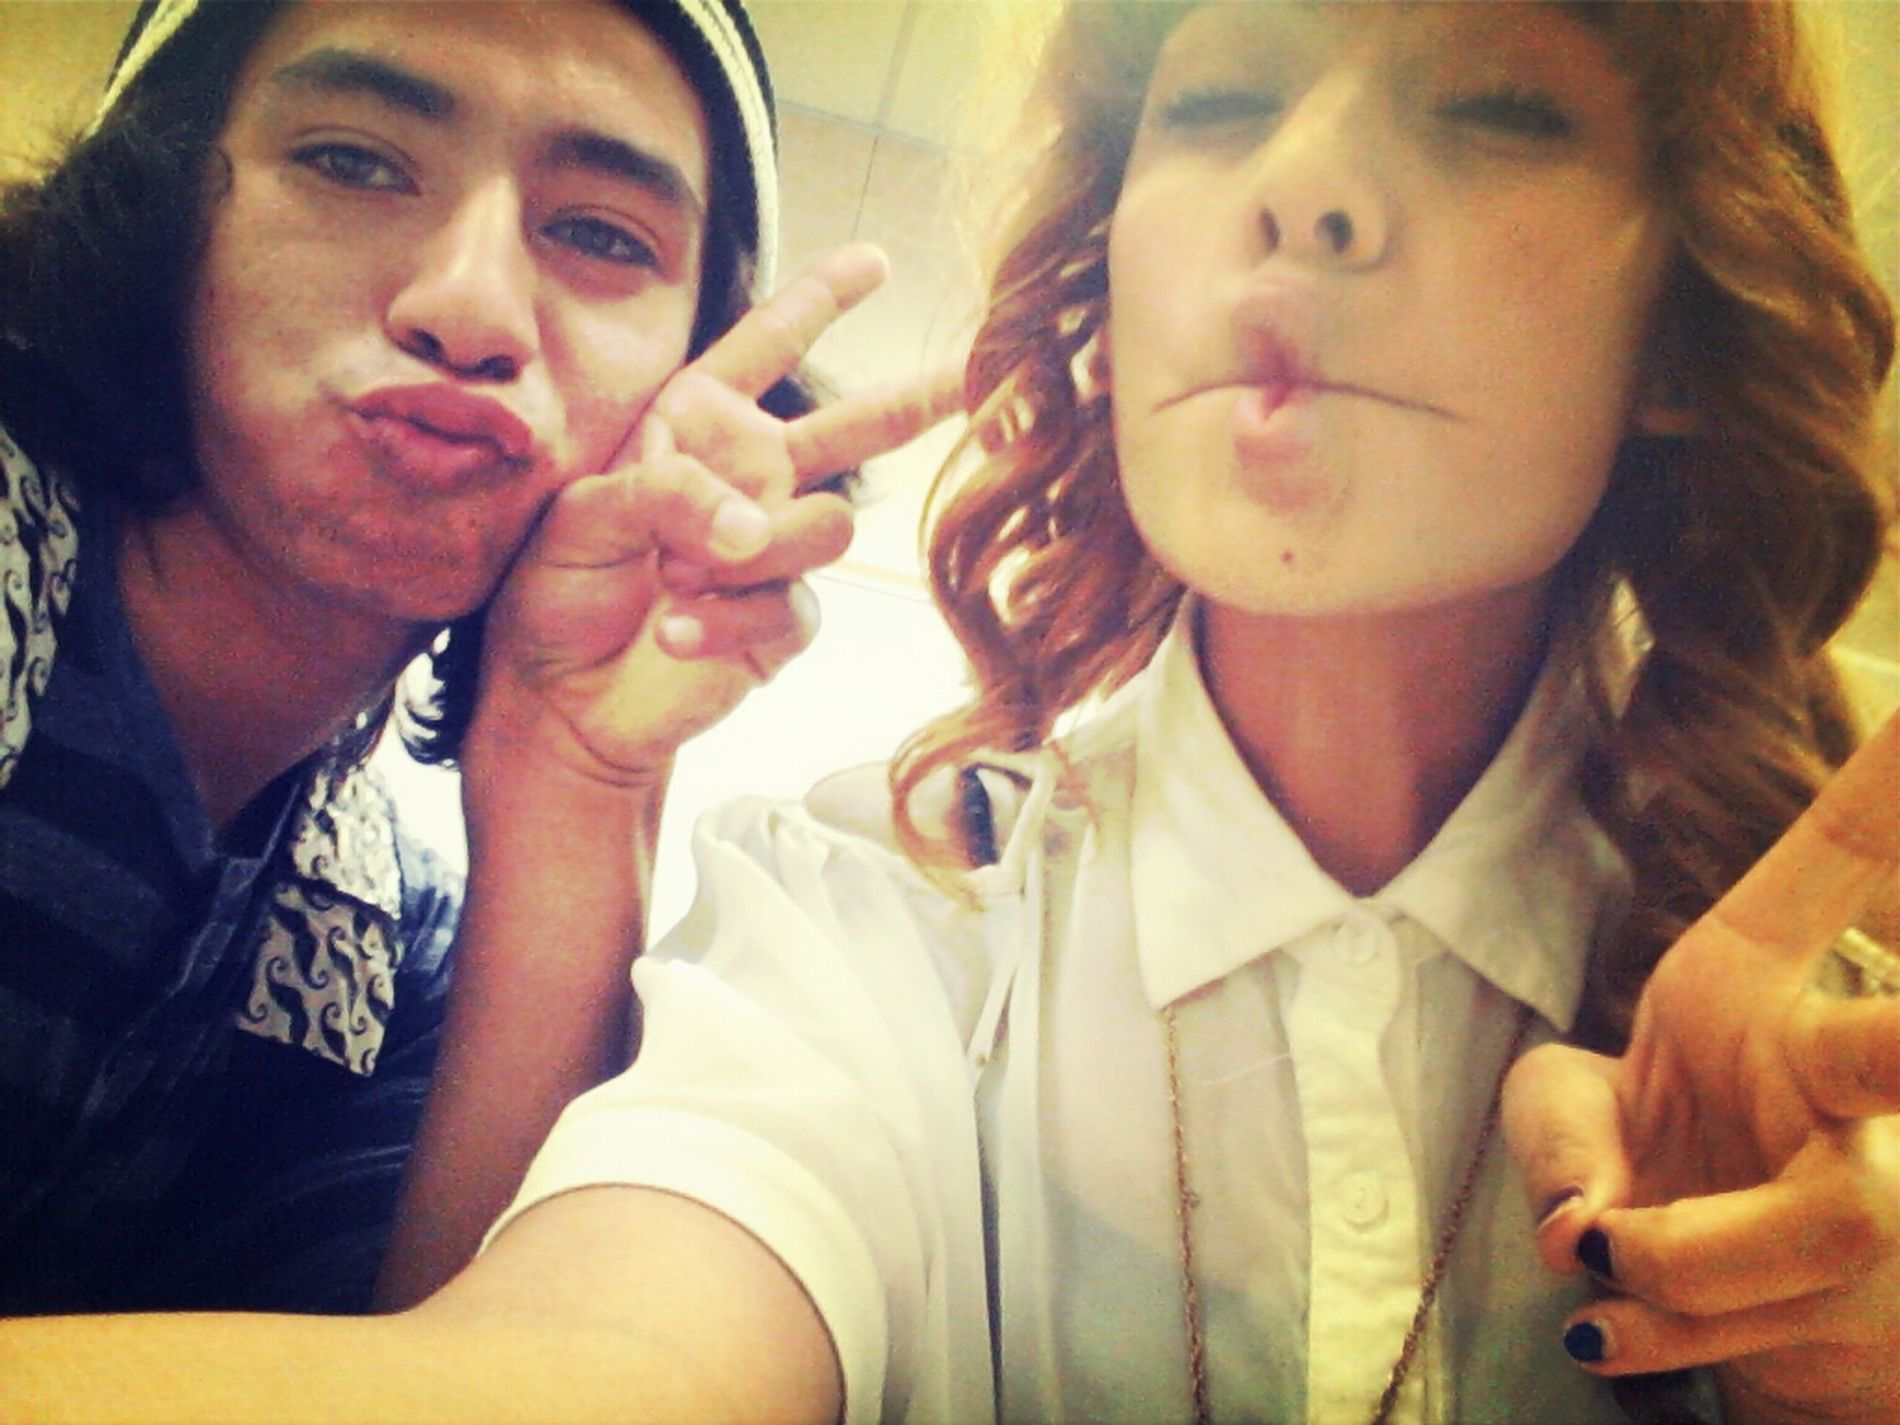 my homeboy Ricky c: were in 6th period. bored we cute fish&duck lips face. <3